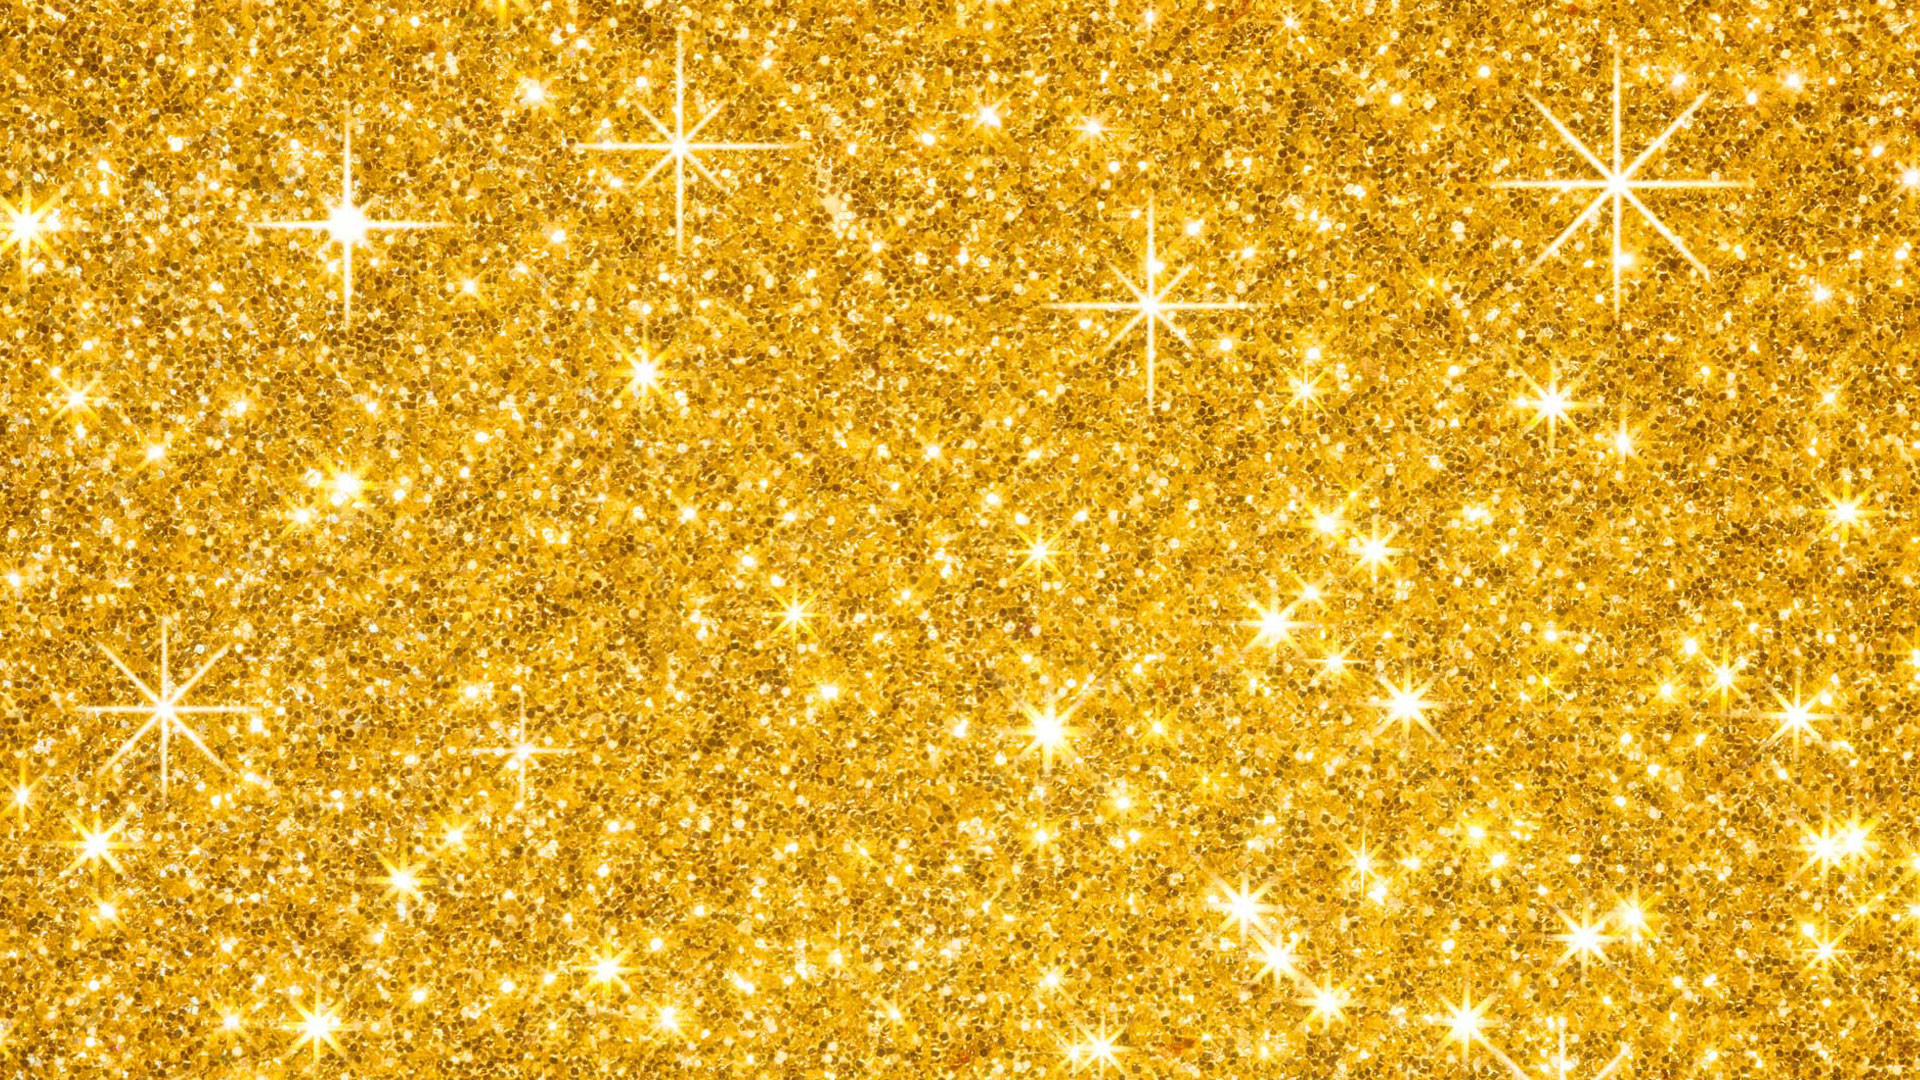 Background Glitter 45 Images